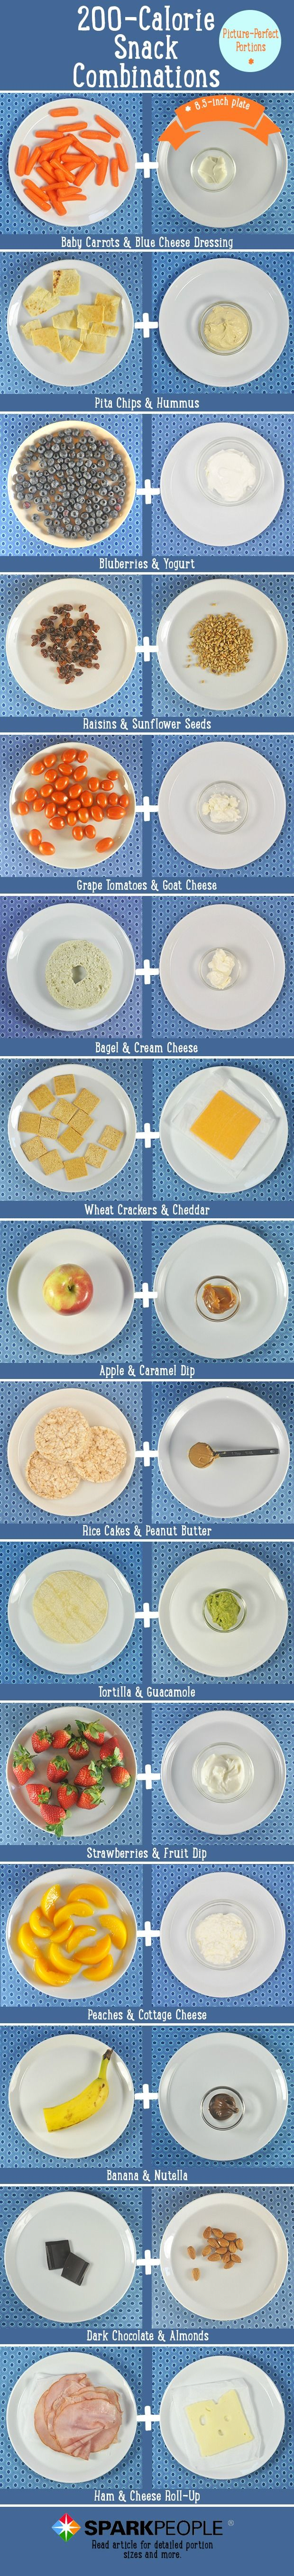 What does a 200-calorie #snack really look like? Awesome visual that shows different 200-cal snack combos